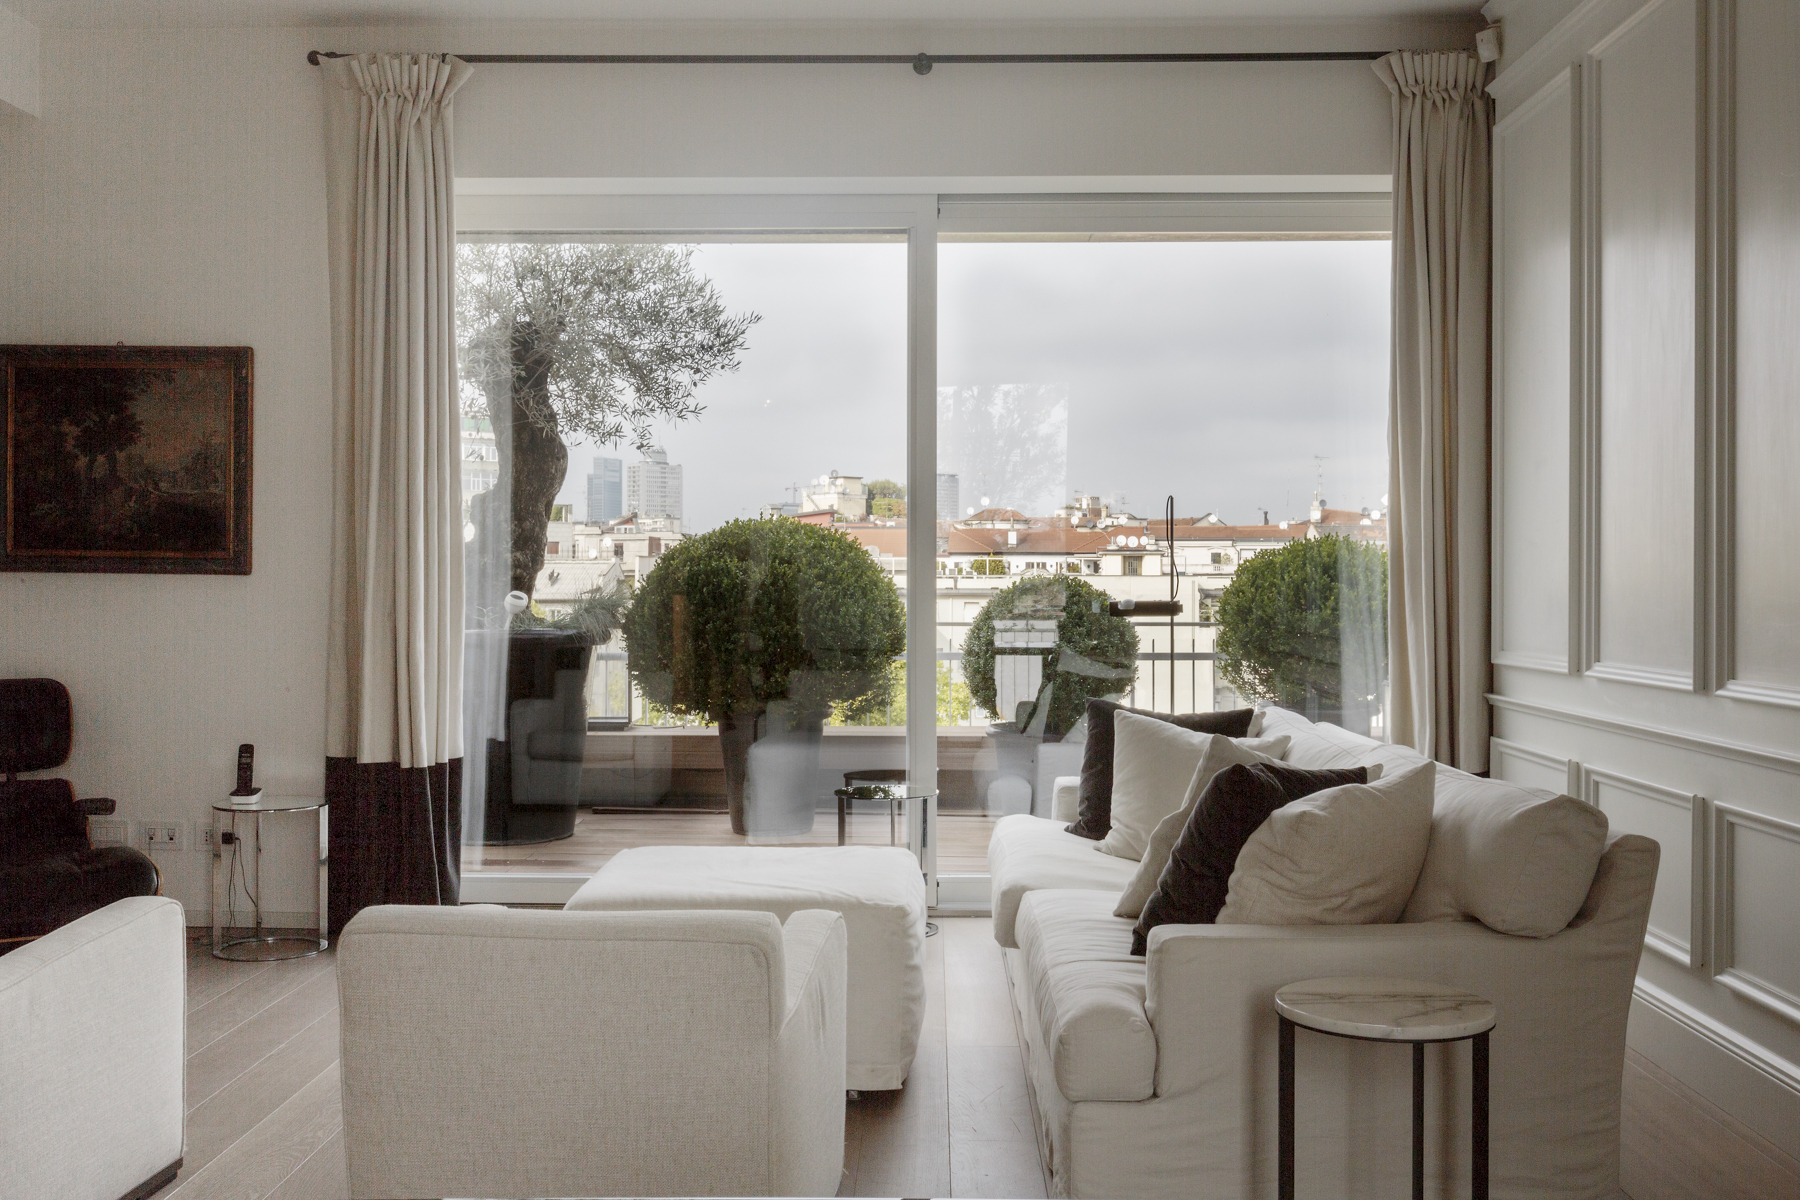 Apartment for Sale at Splendid penthouse with breathtaking view of the city Via Rossini Milano, Milan 20122 Italy